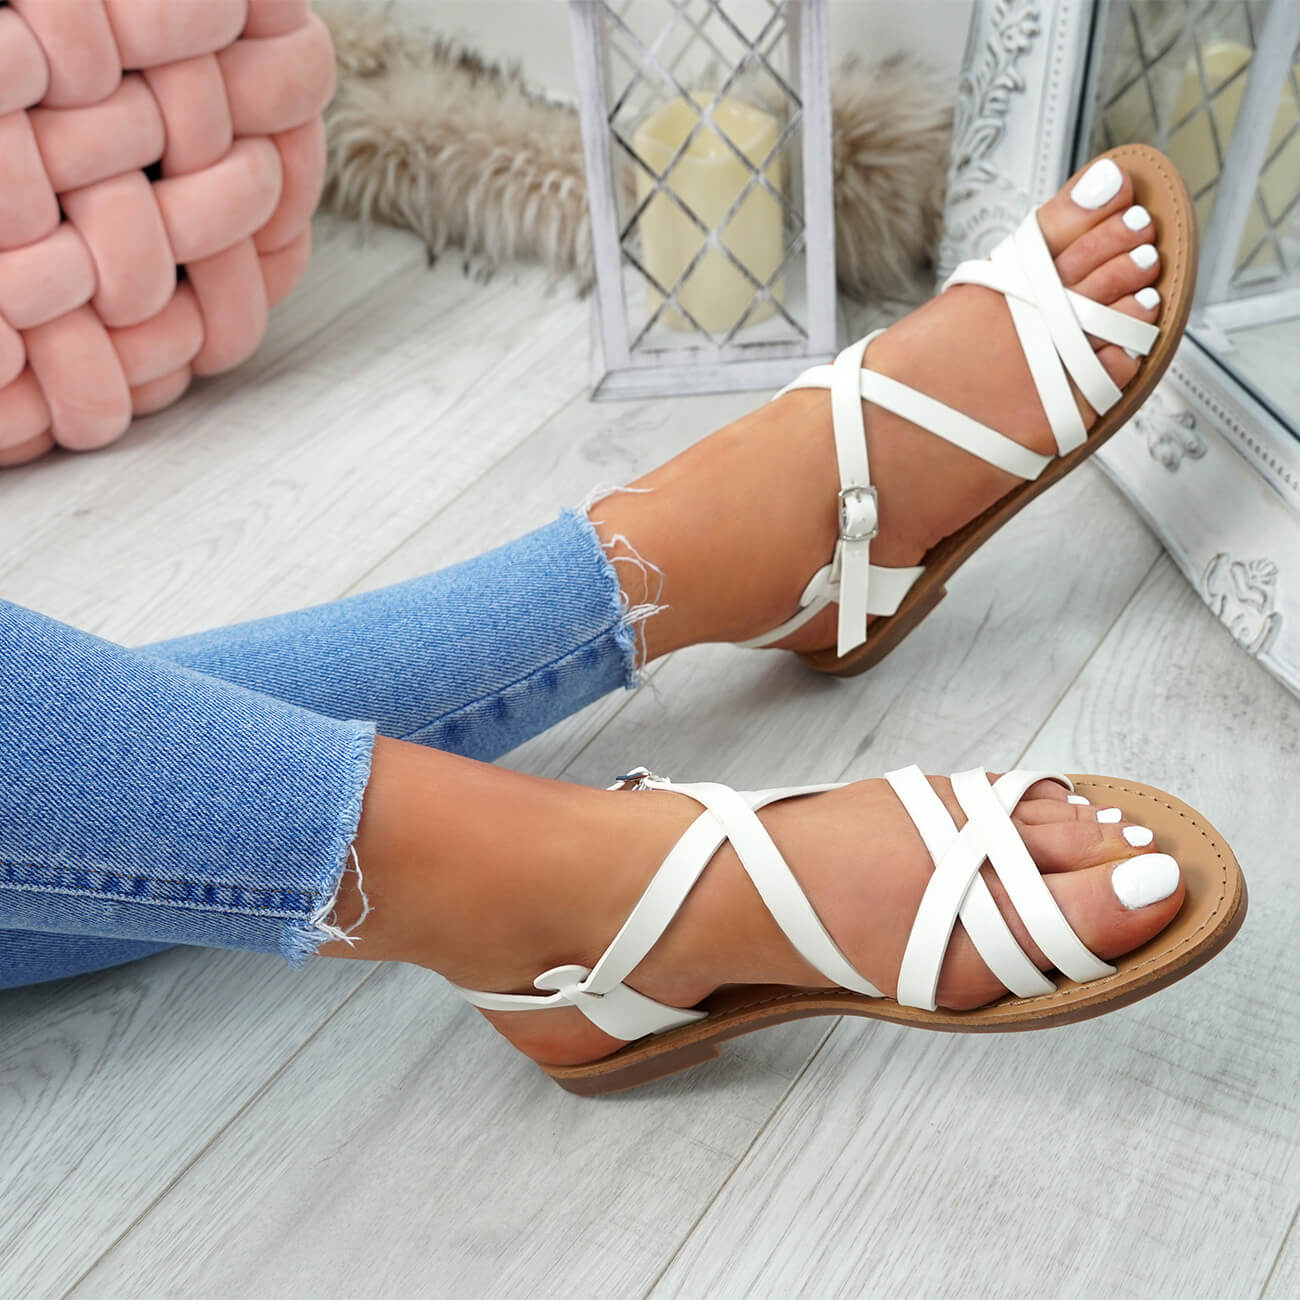 WOMENS-LADIES-ANKLE-STRAP-PEEP-TOE-BUCKLE-FLAT-SANDALS-SUMMER-CASUAL-SHOES thumbnail 35